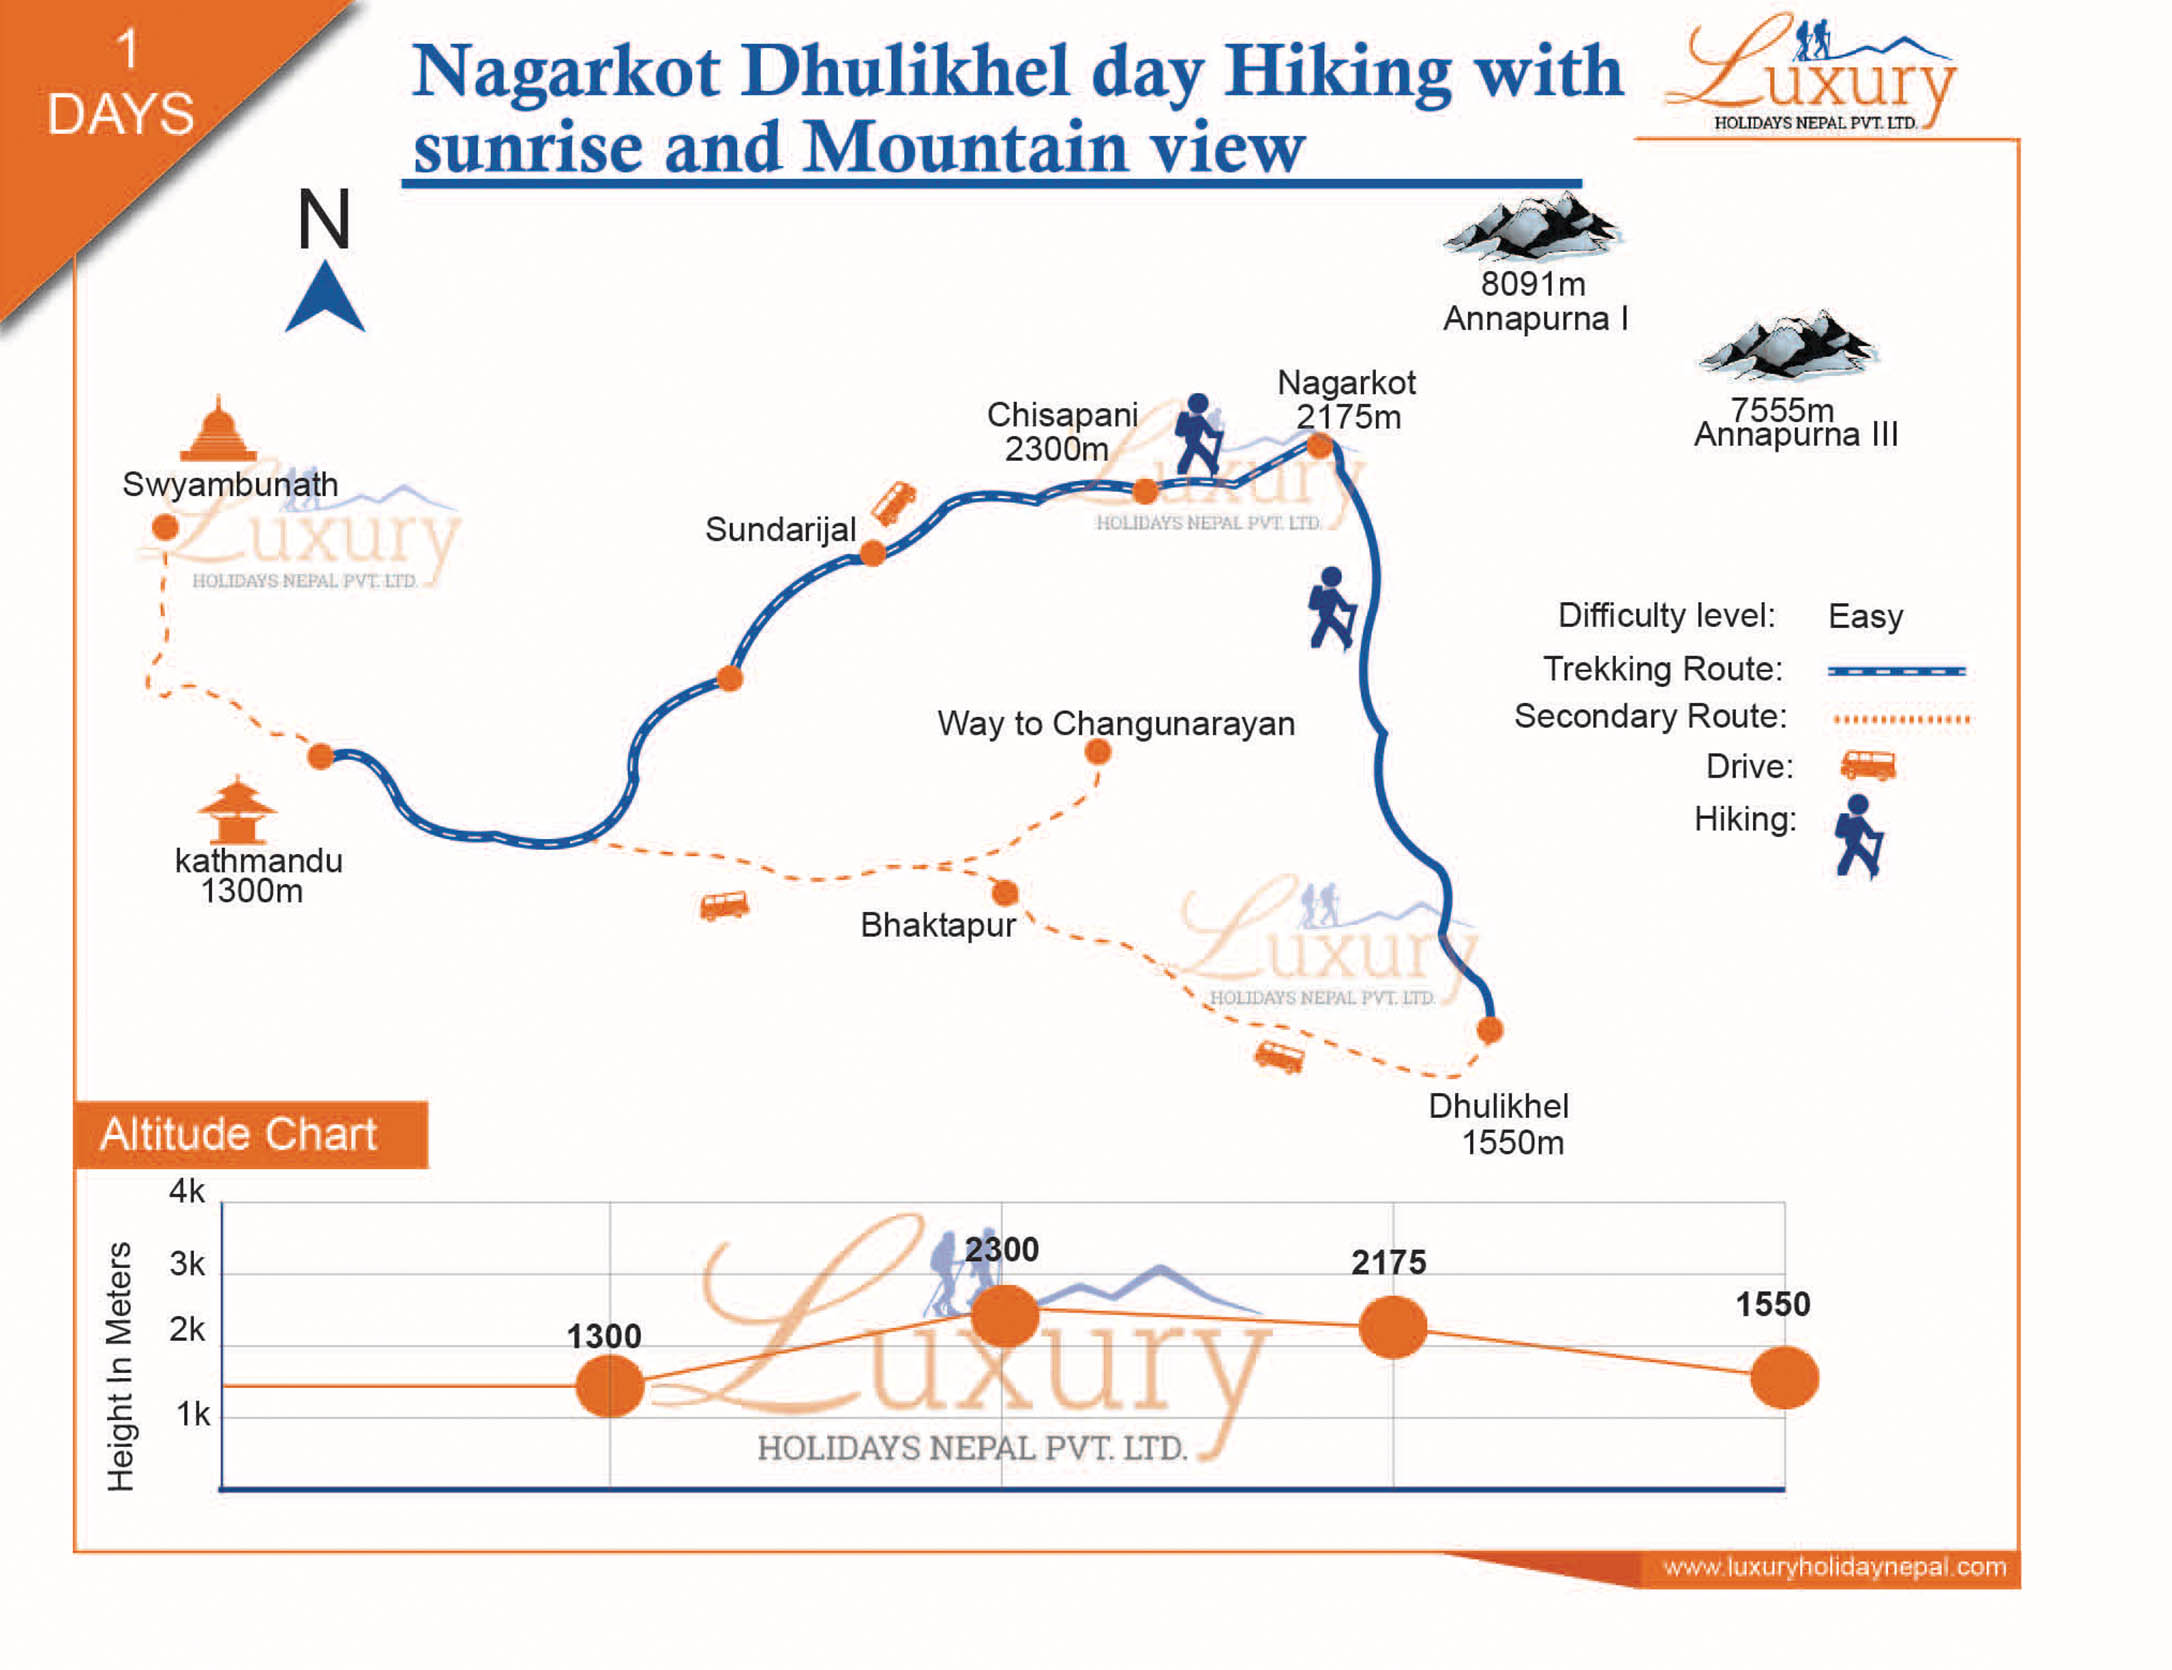 Nagarkot Dhulikhel day Hiking with Sunrise and mountain view Trip Map